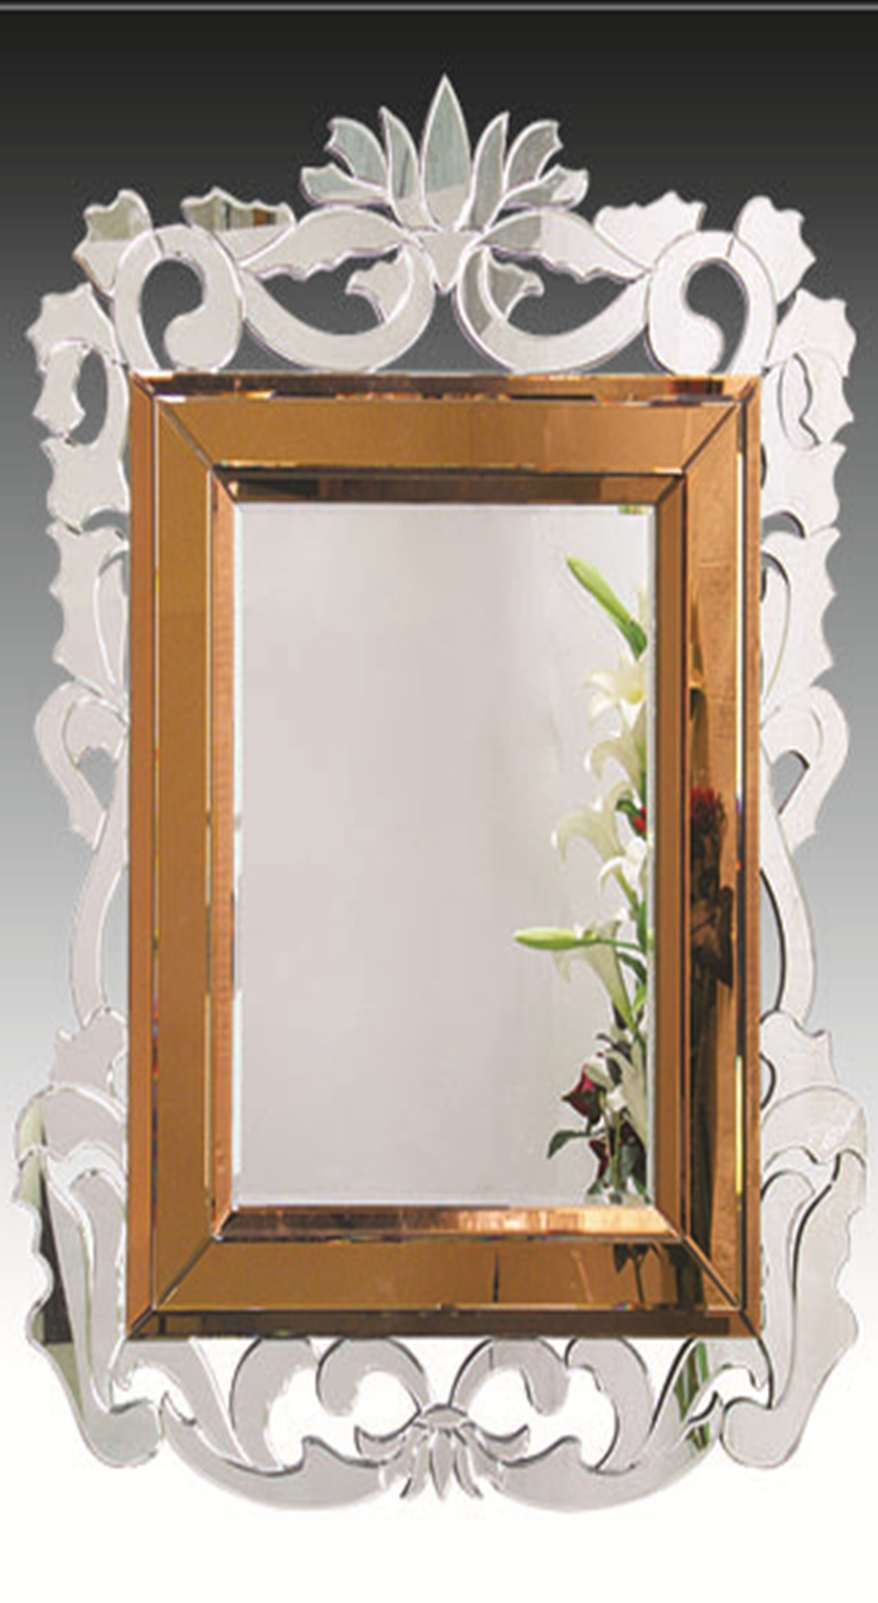 French Baroque Style Bronze Venetian Wall Mirror Jh004 Within Baroque Style Mirror (Image 12 of 15)